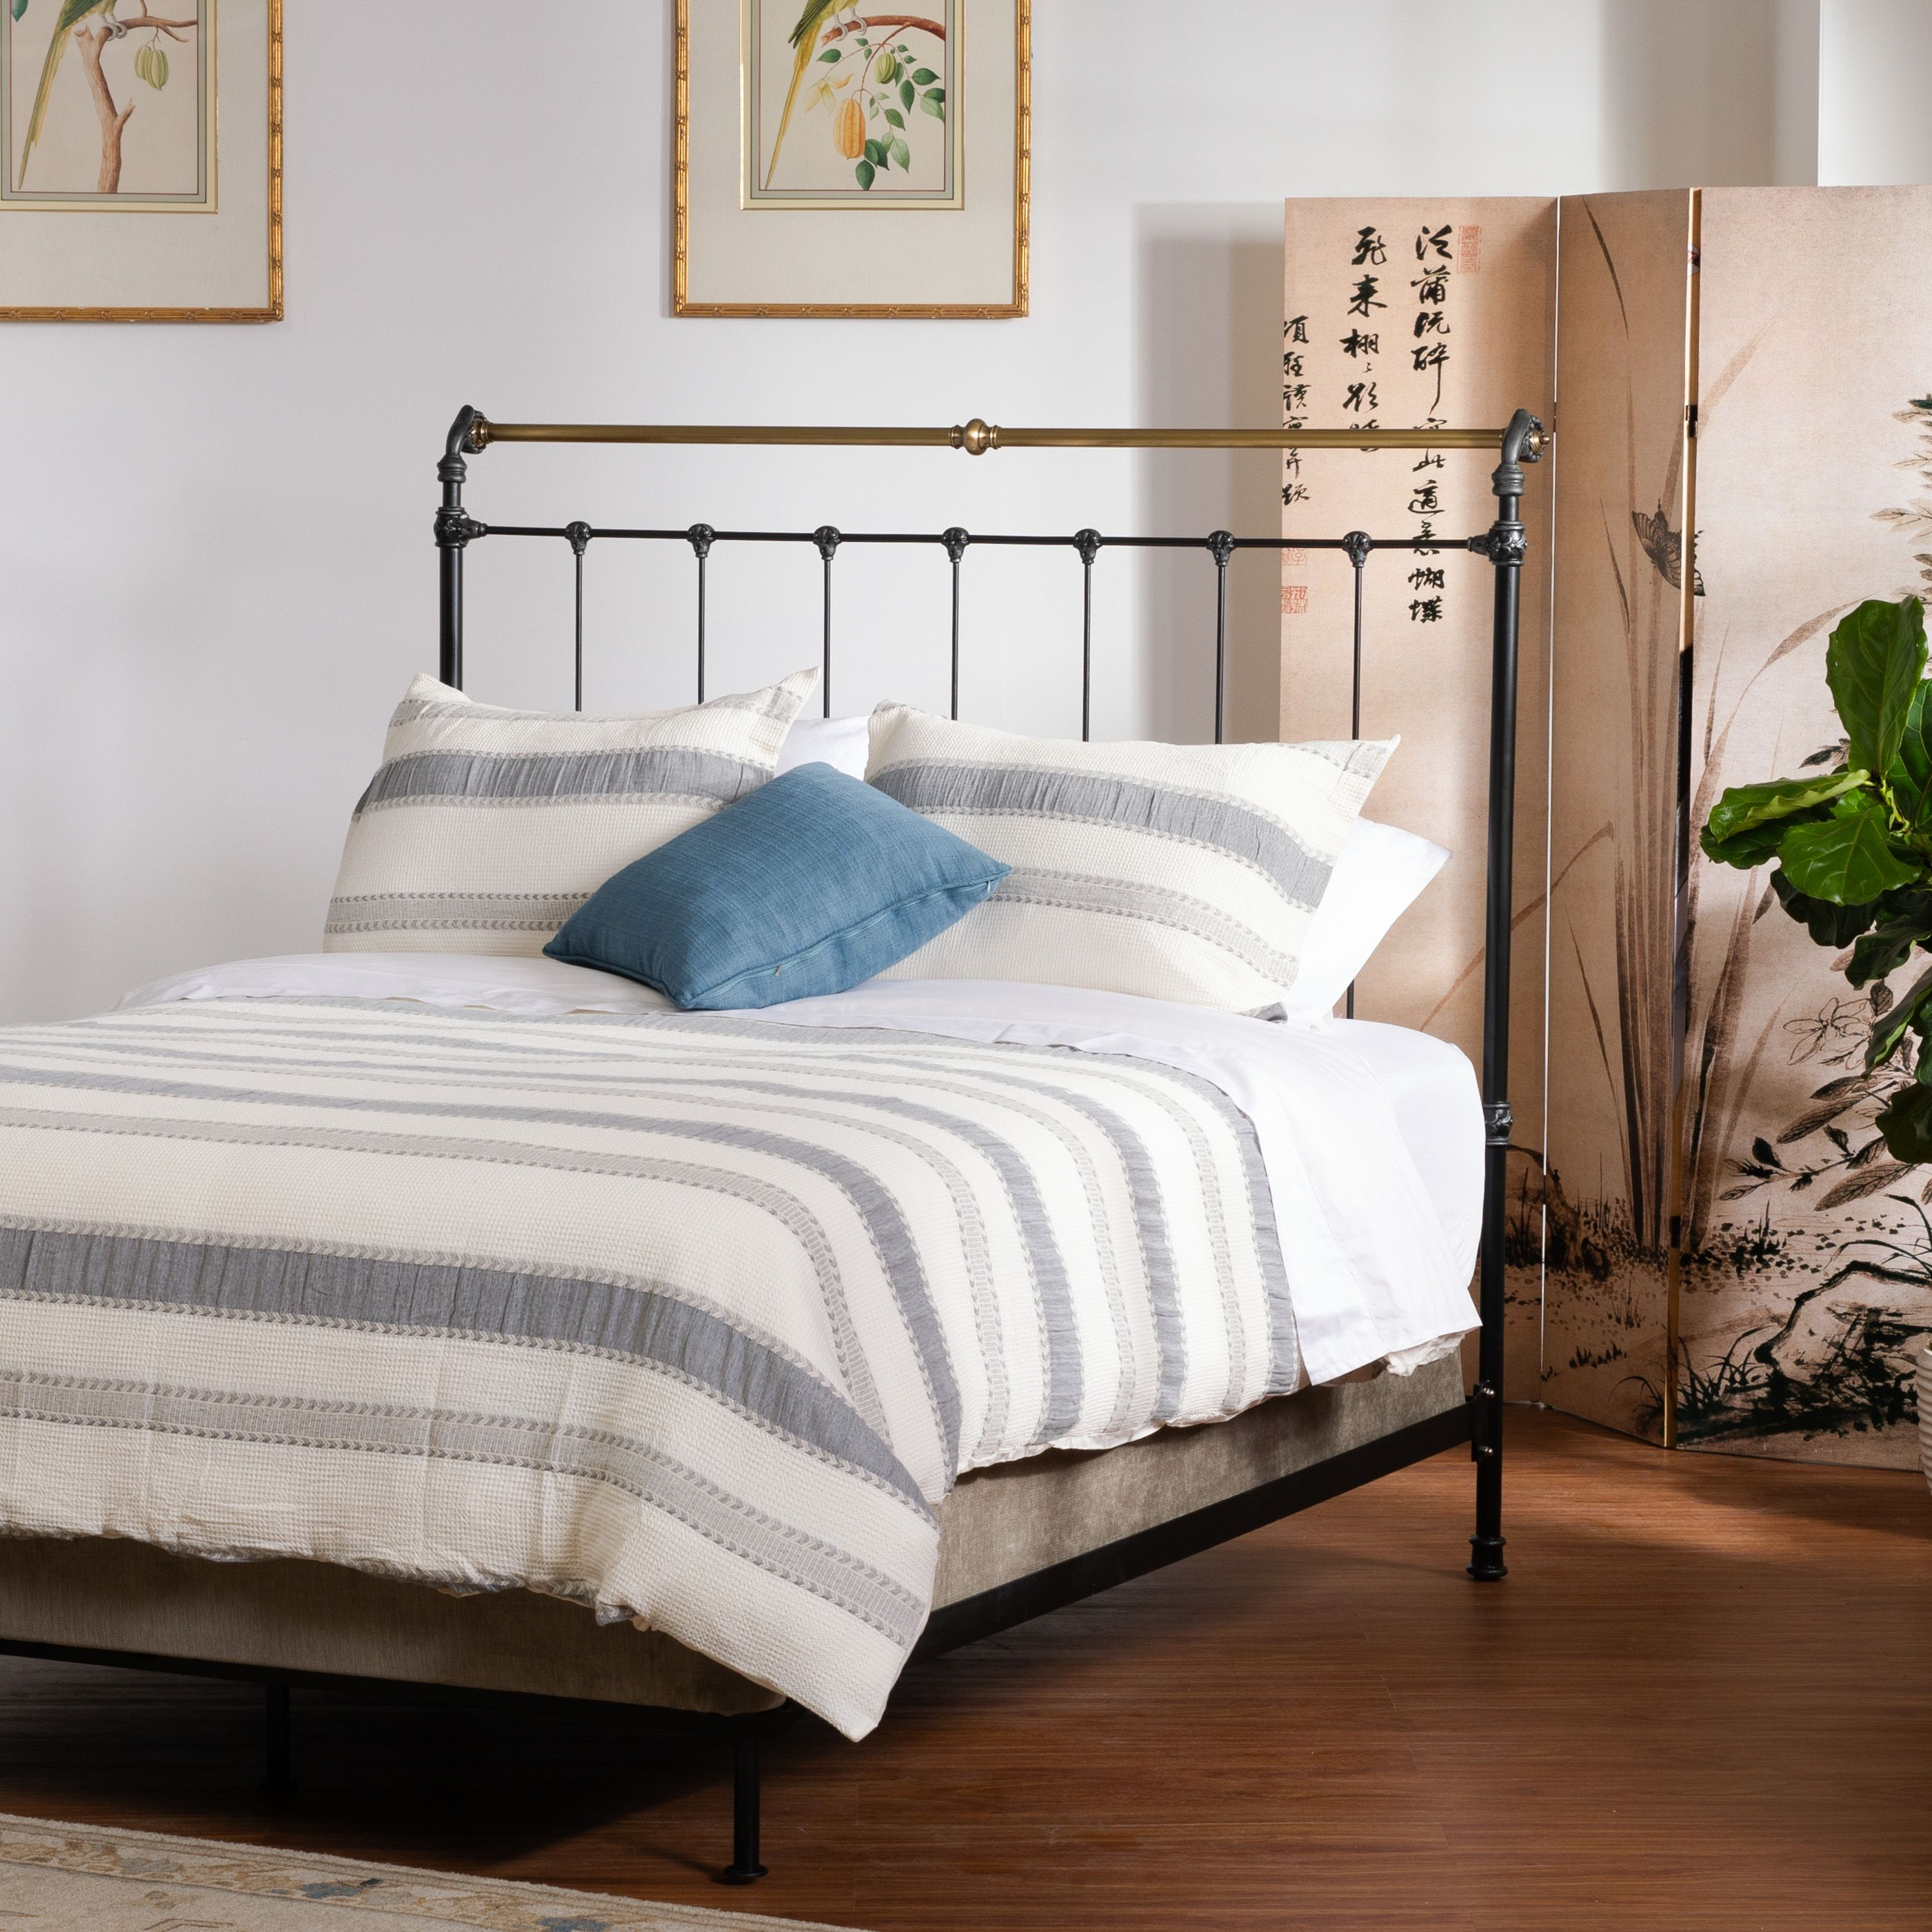 Dreaming Of An Escape Make Your Bedroom A Sanctuary And Escape From The Real World Right In Your Own Home Feat Iron And Iron Bed Bed Bedroom Inspirations